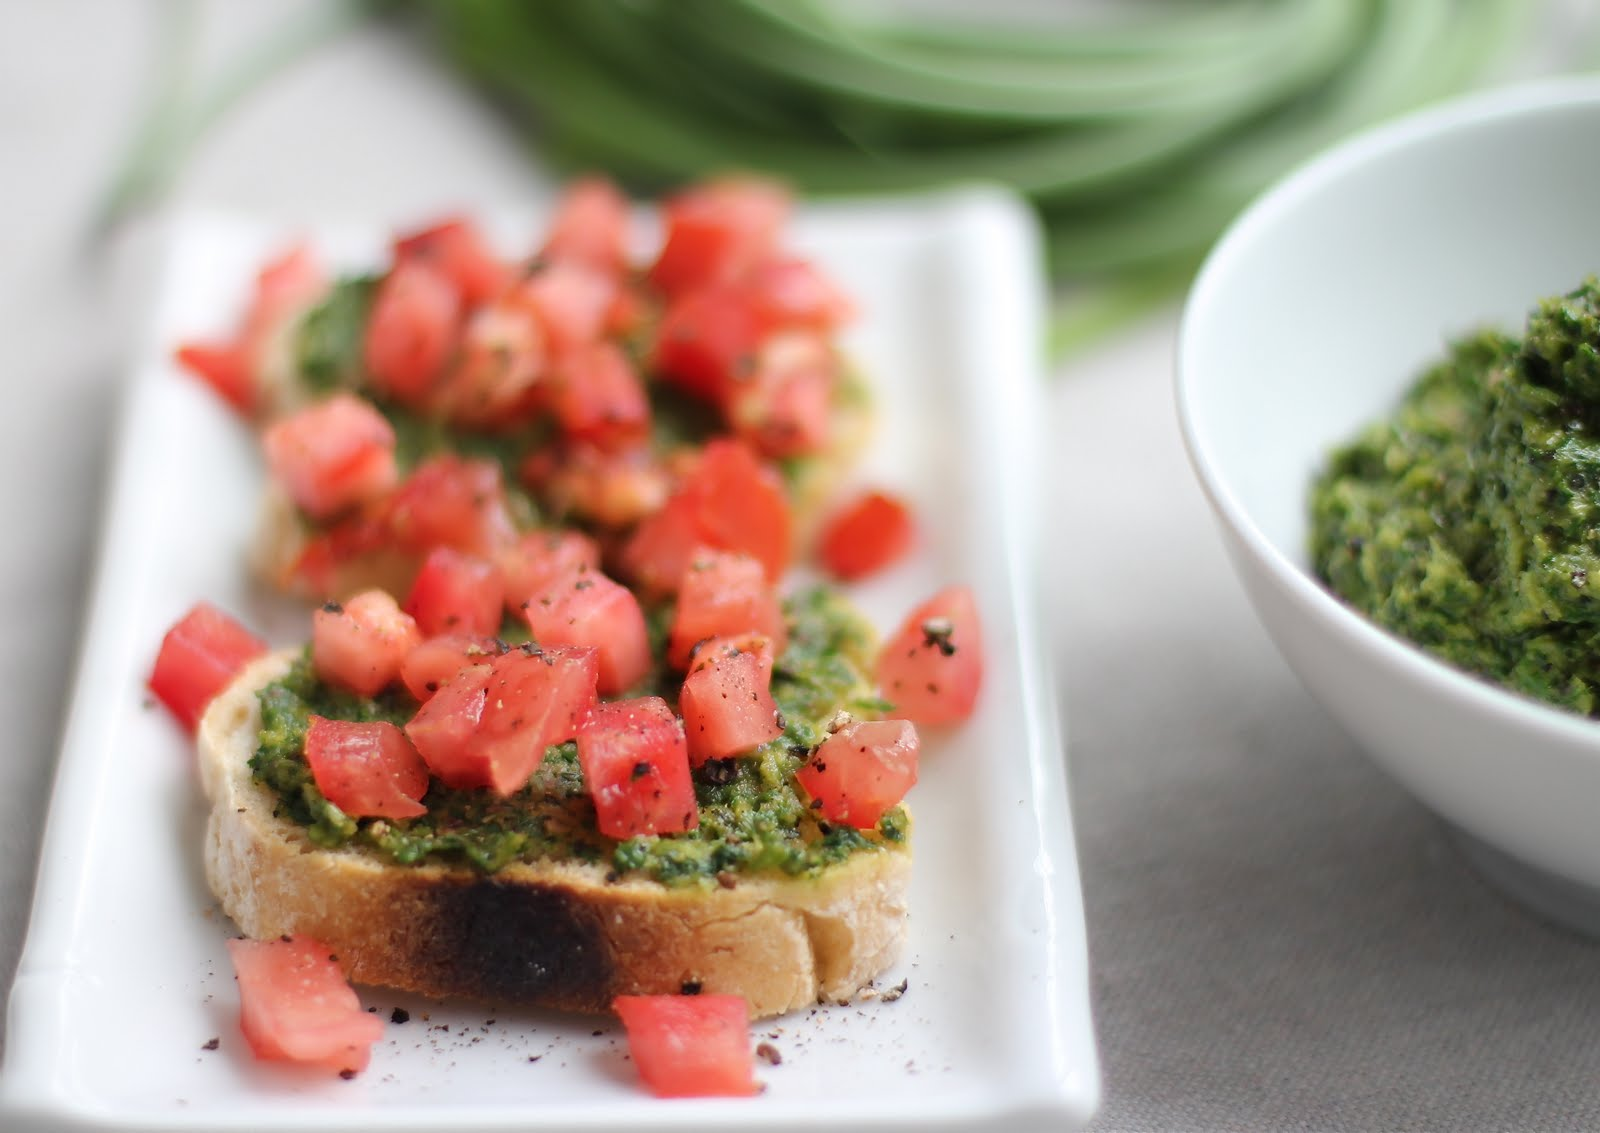 Toasted Gluten-Free Baguette Slices Topped with Swiss Chard Garlic Scape Pesto and Fresh Tomatoes